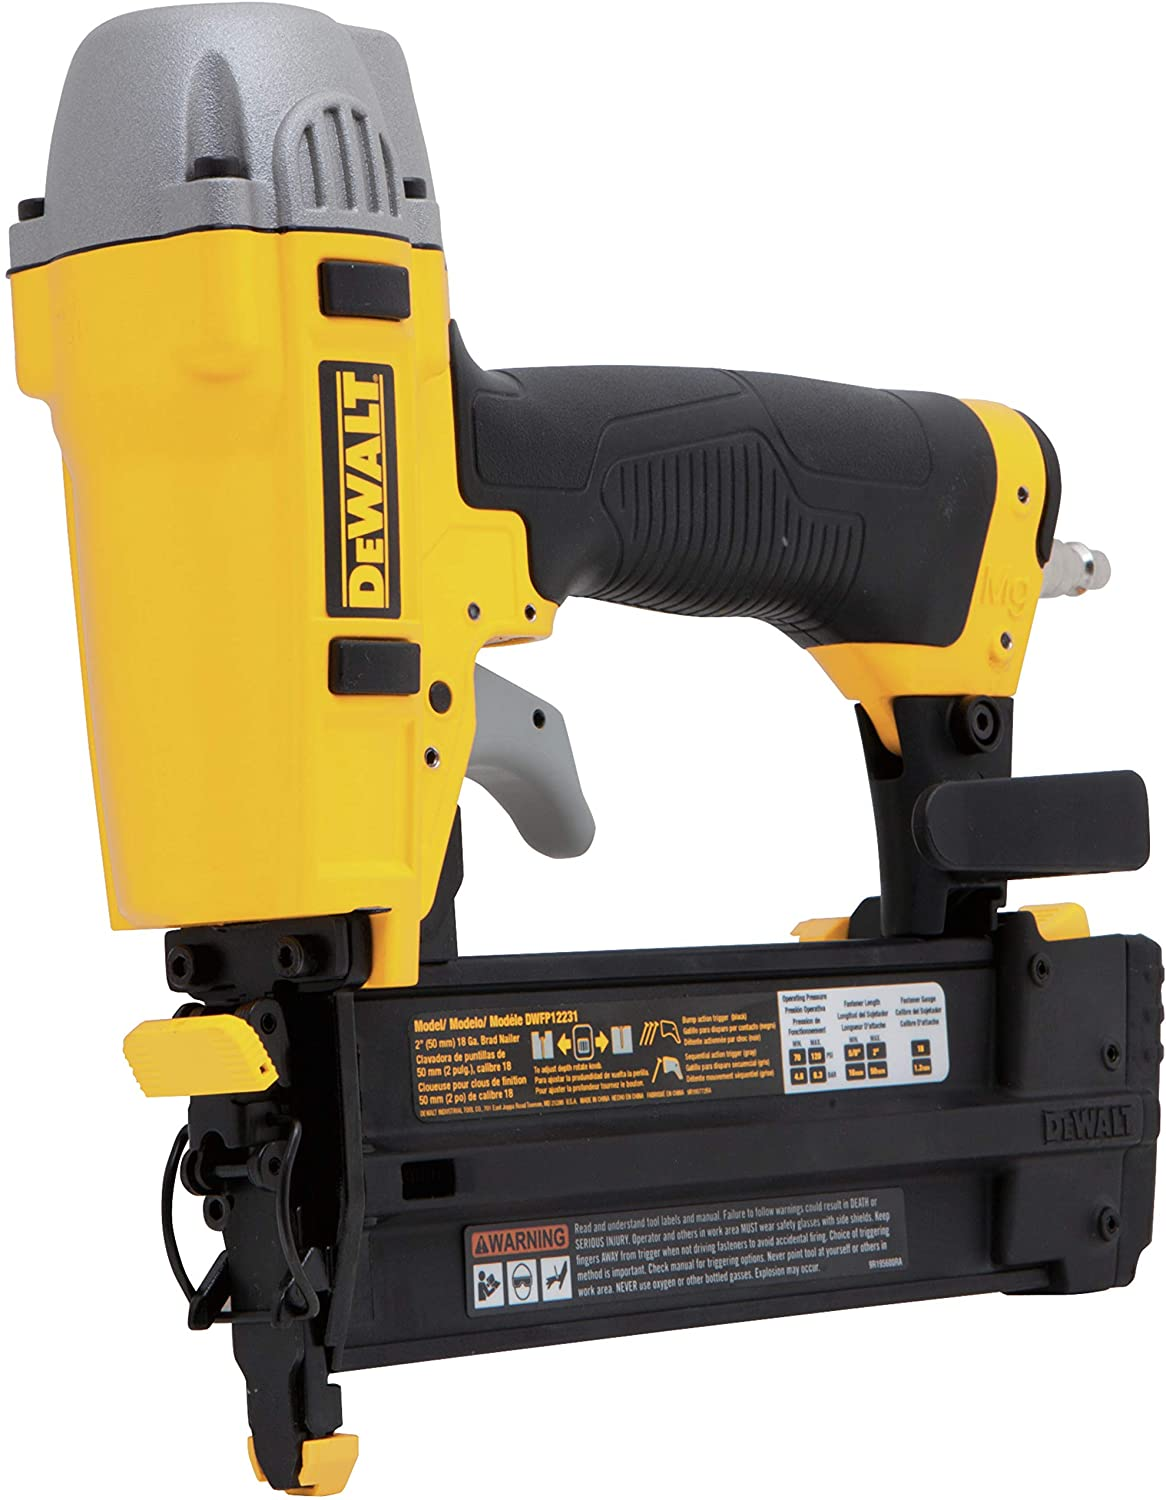 3. DeWALT DWFP12231 Pneumatic Brad Nailer Kit